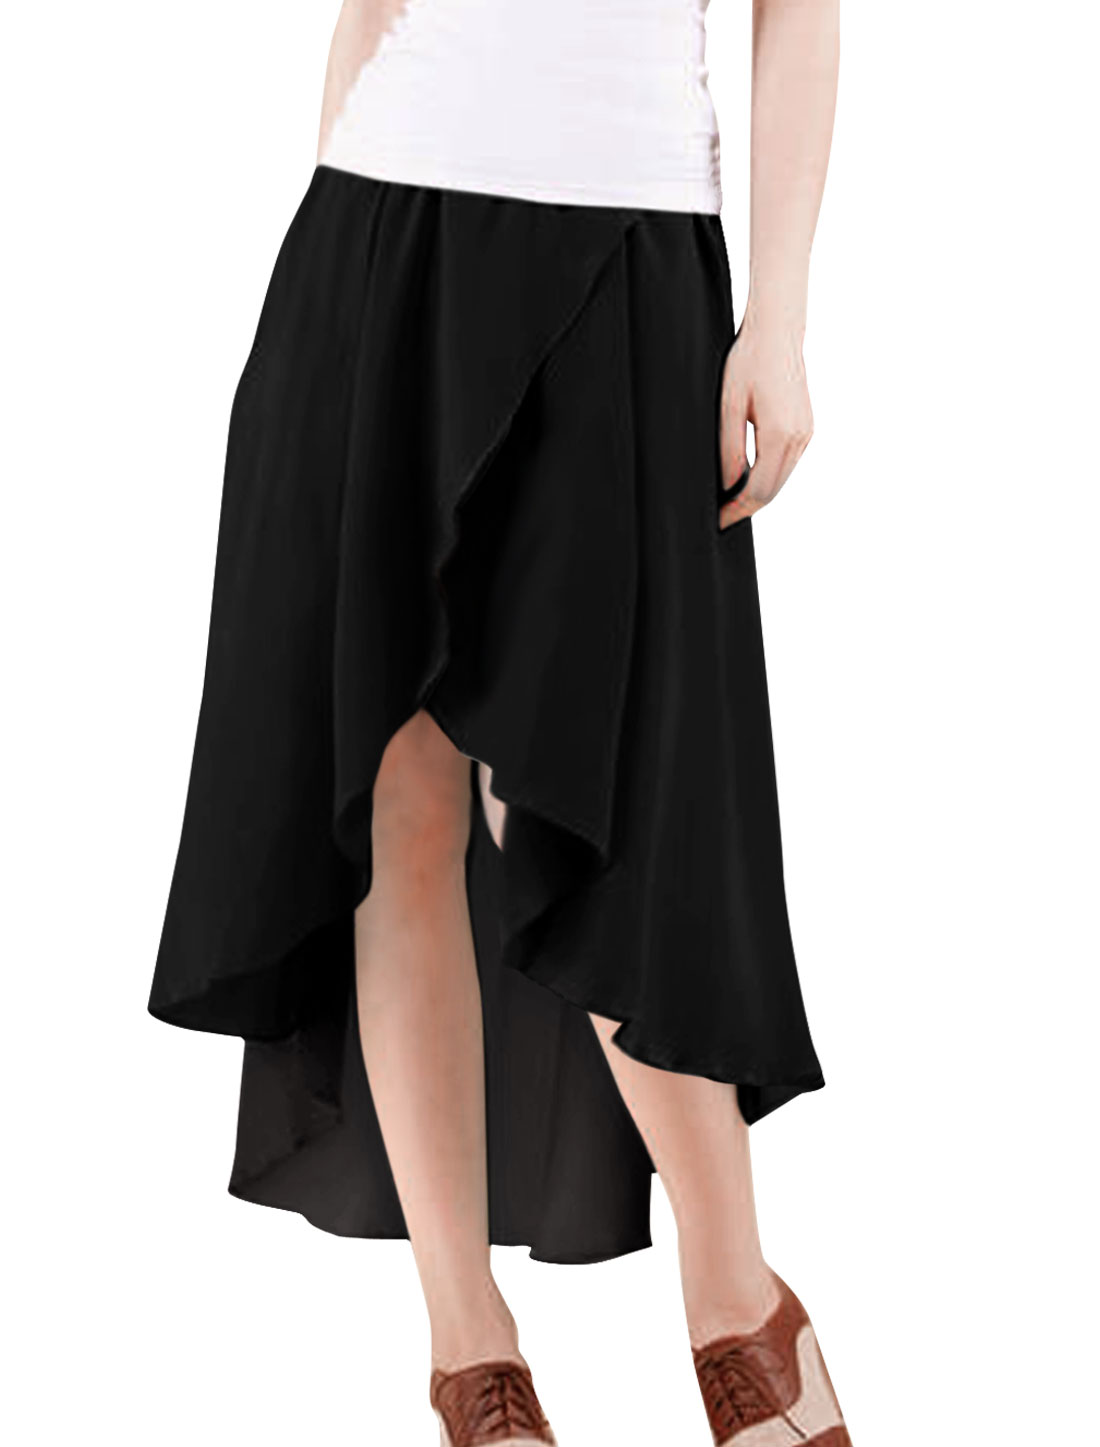 Ladies Stylish Split Front Detail Ruffled Black Knee-Length Skirt S